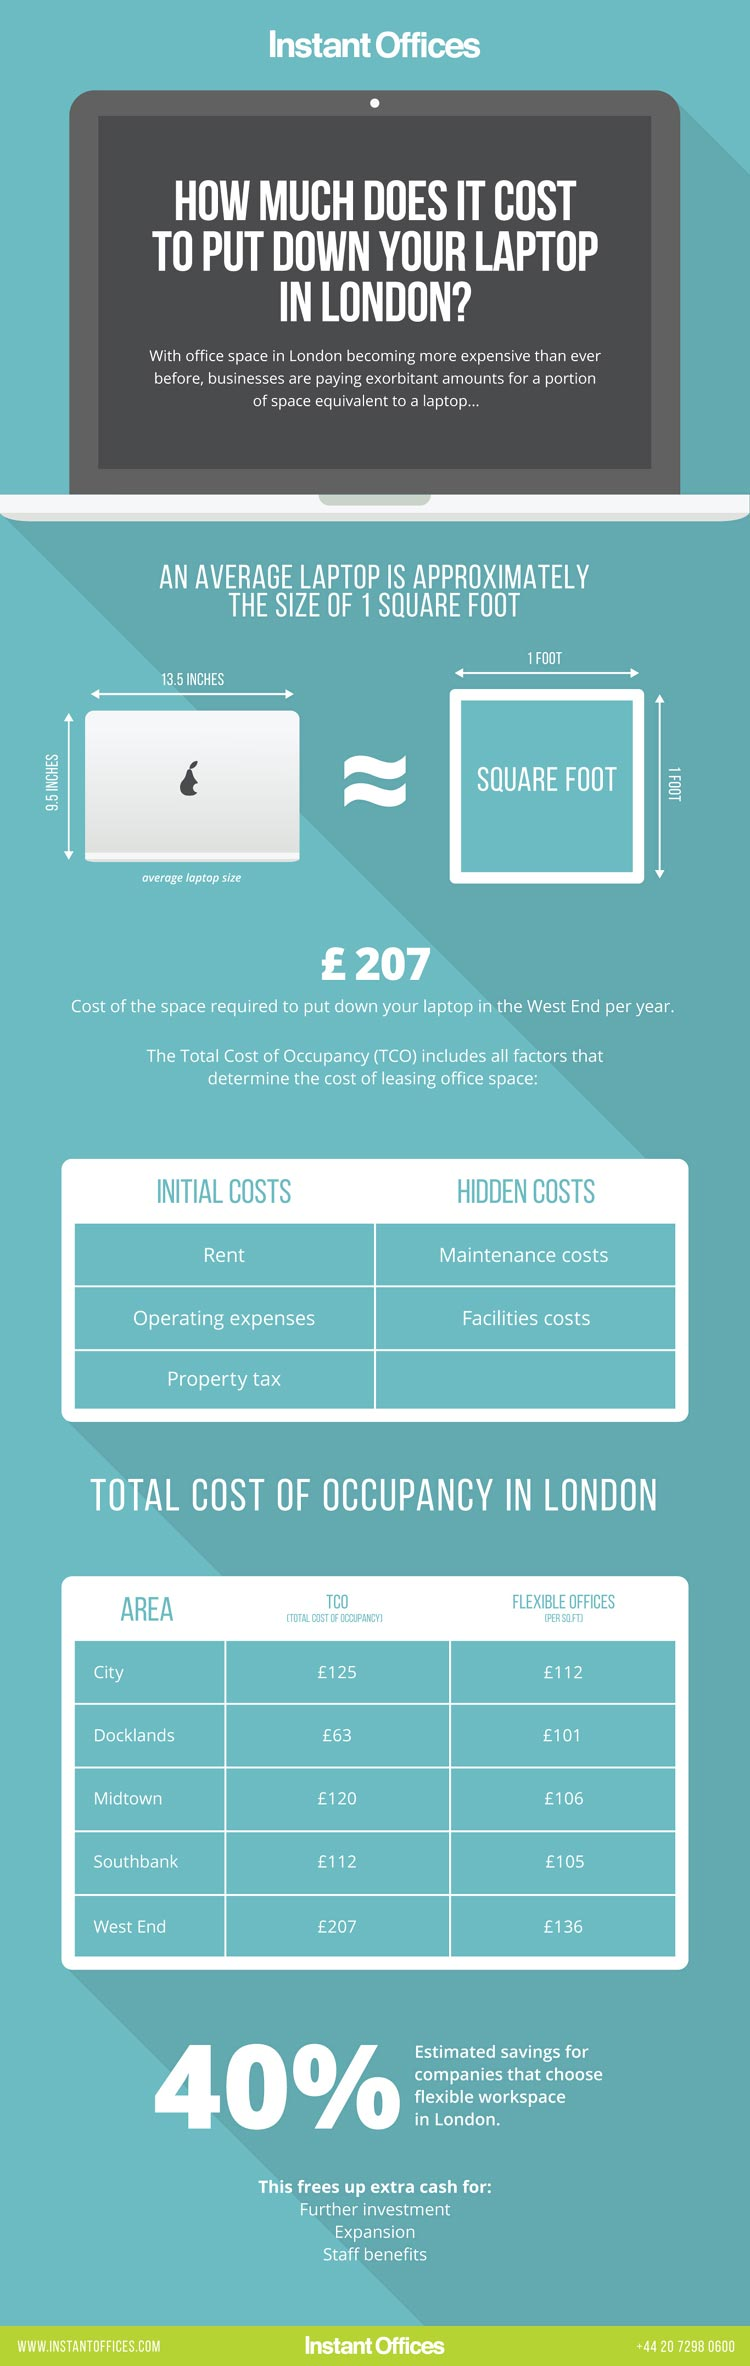 How-Much-Does-It-Cost-to-Put-Down-Your-Laptop-in-London